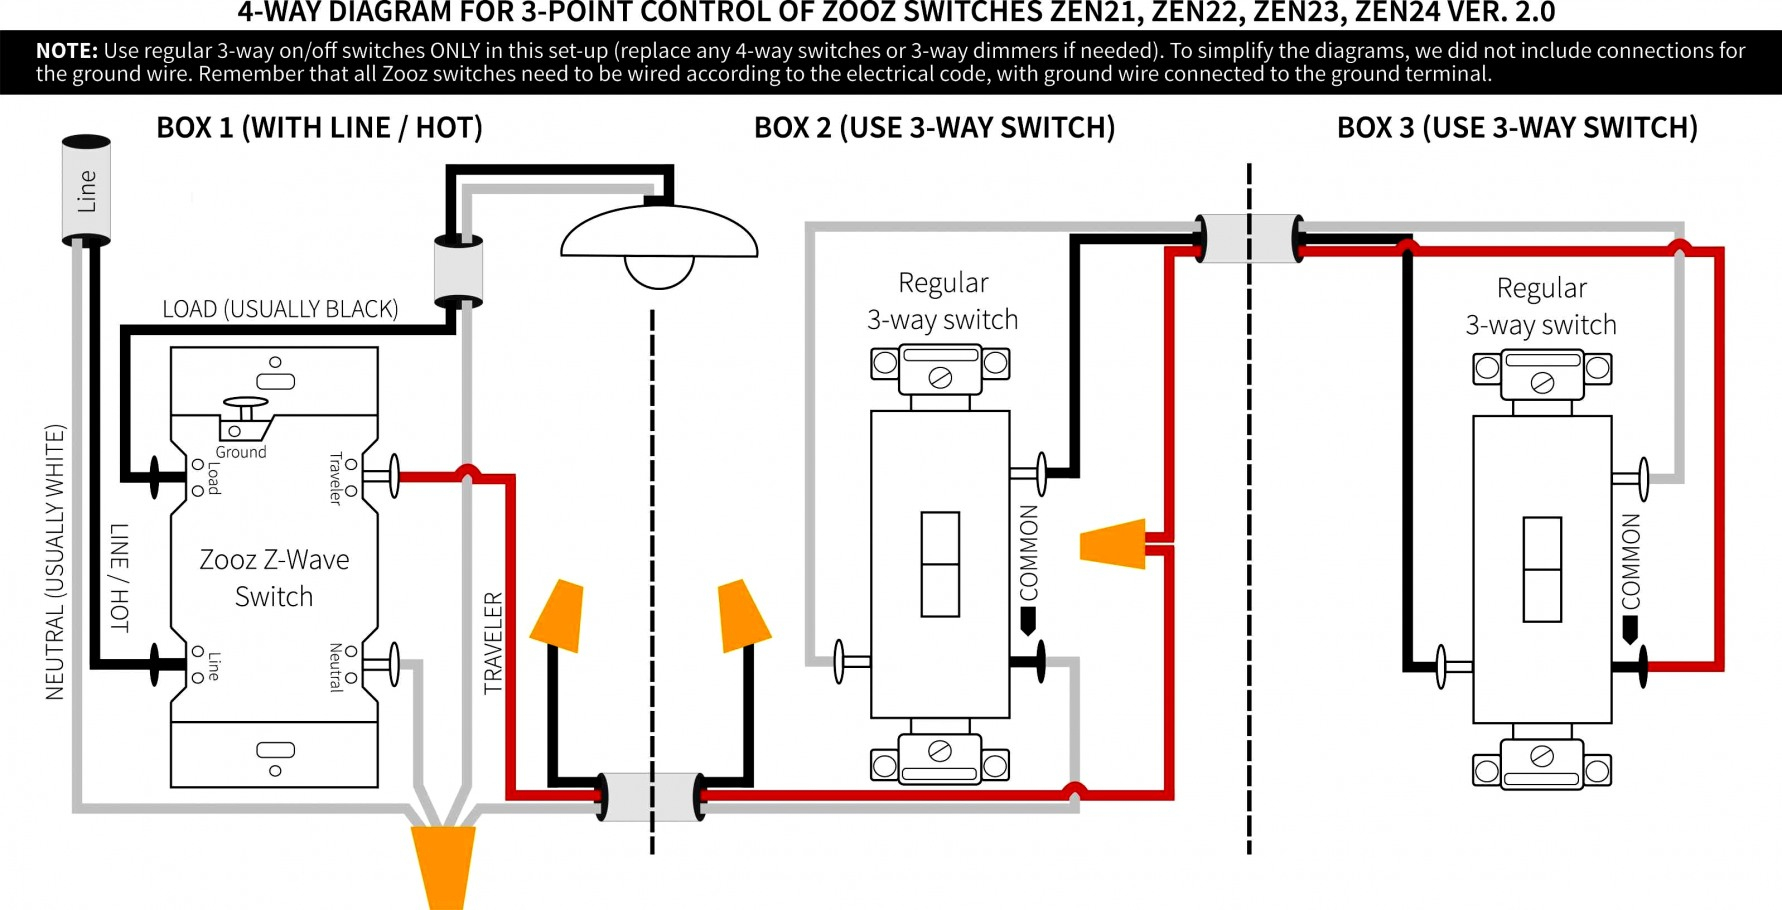 Wonderful Simple 3 Way Switch Wiring Diagram Video On How To Wire A - 3Way Switch Wiring Diagram